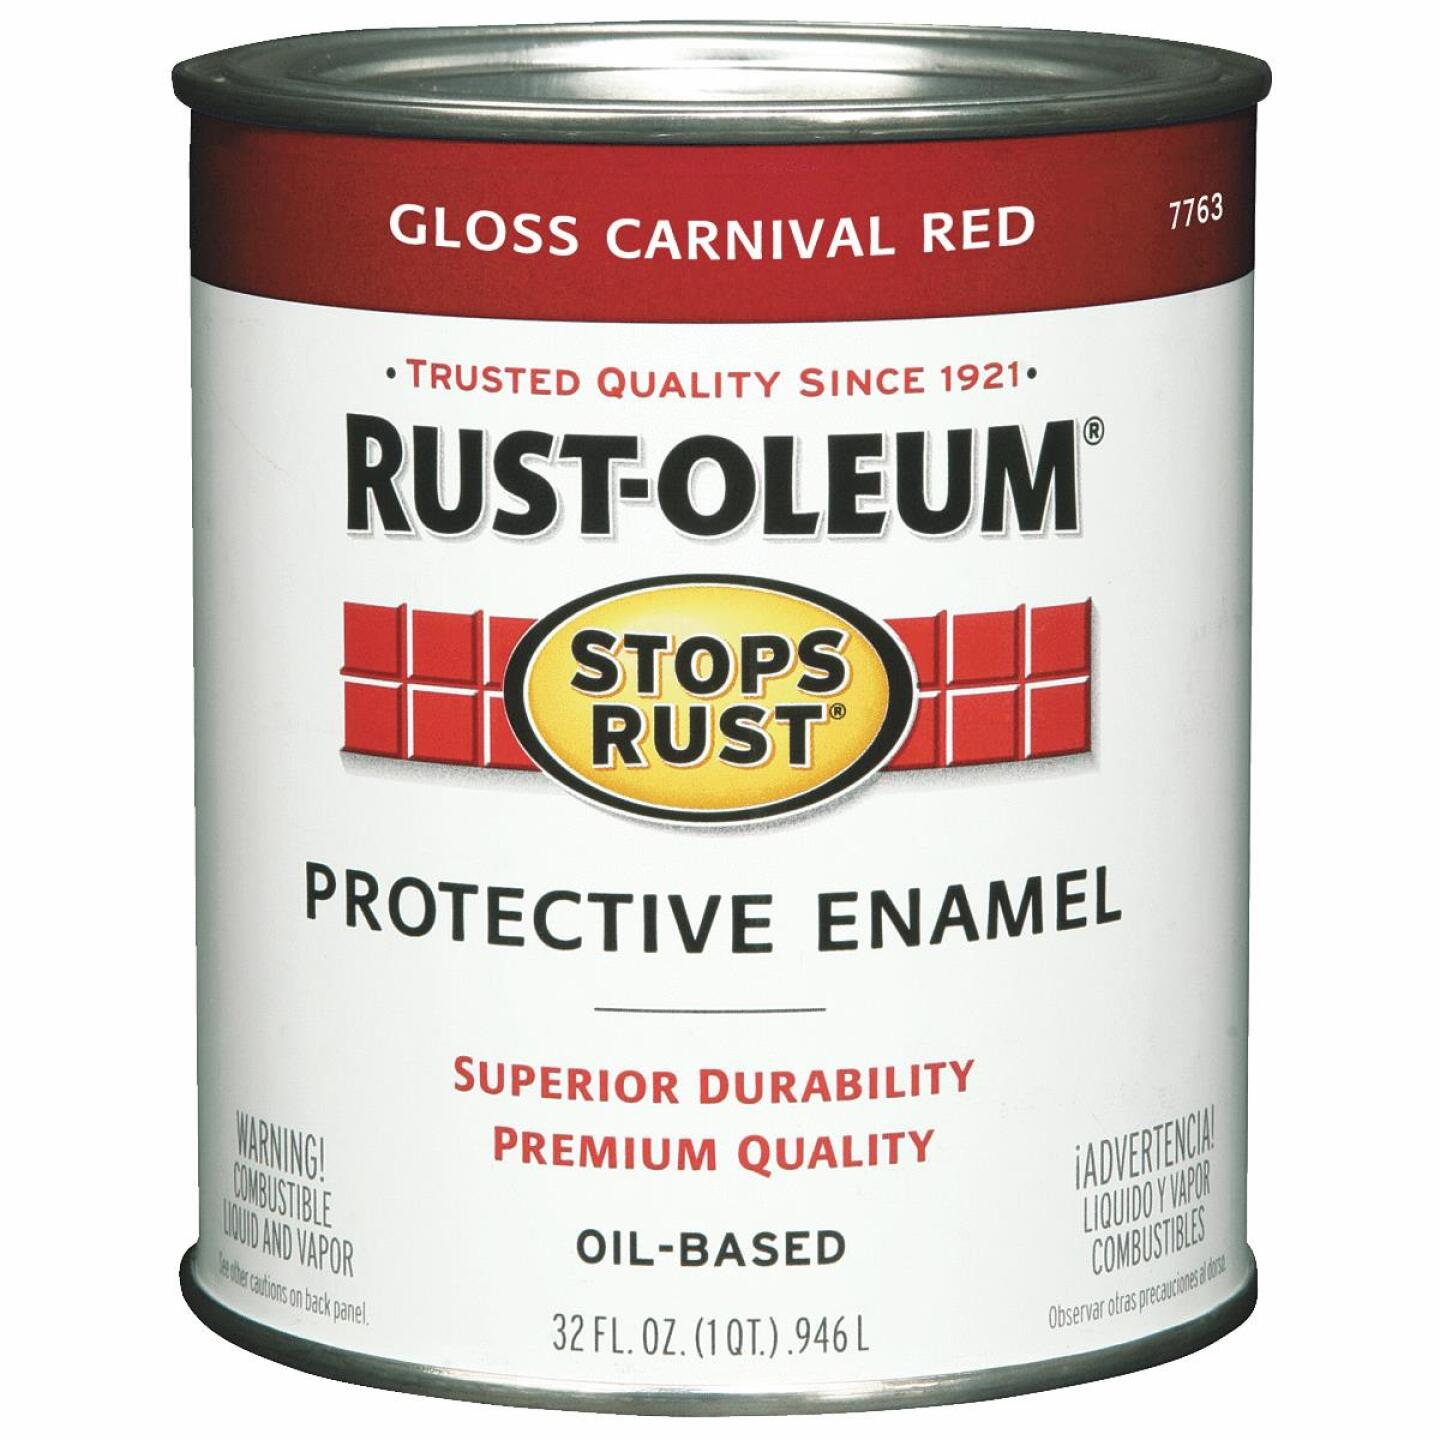 Rust-Oleum Stops Rust Oil Based Gloss Protective Rust Control Enamel, Carnival Red, 1 Qt. Image 1